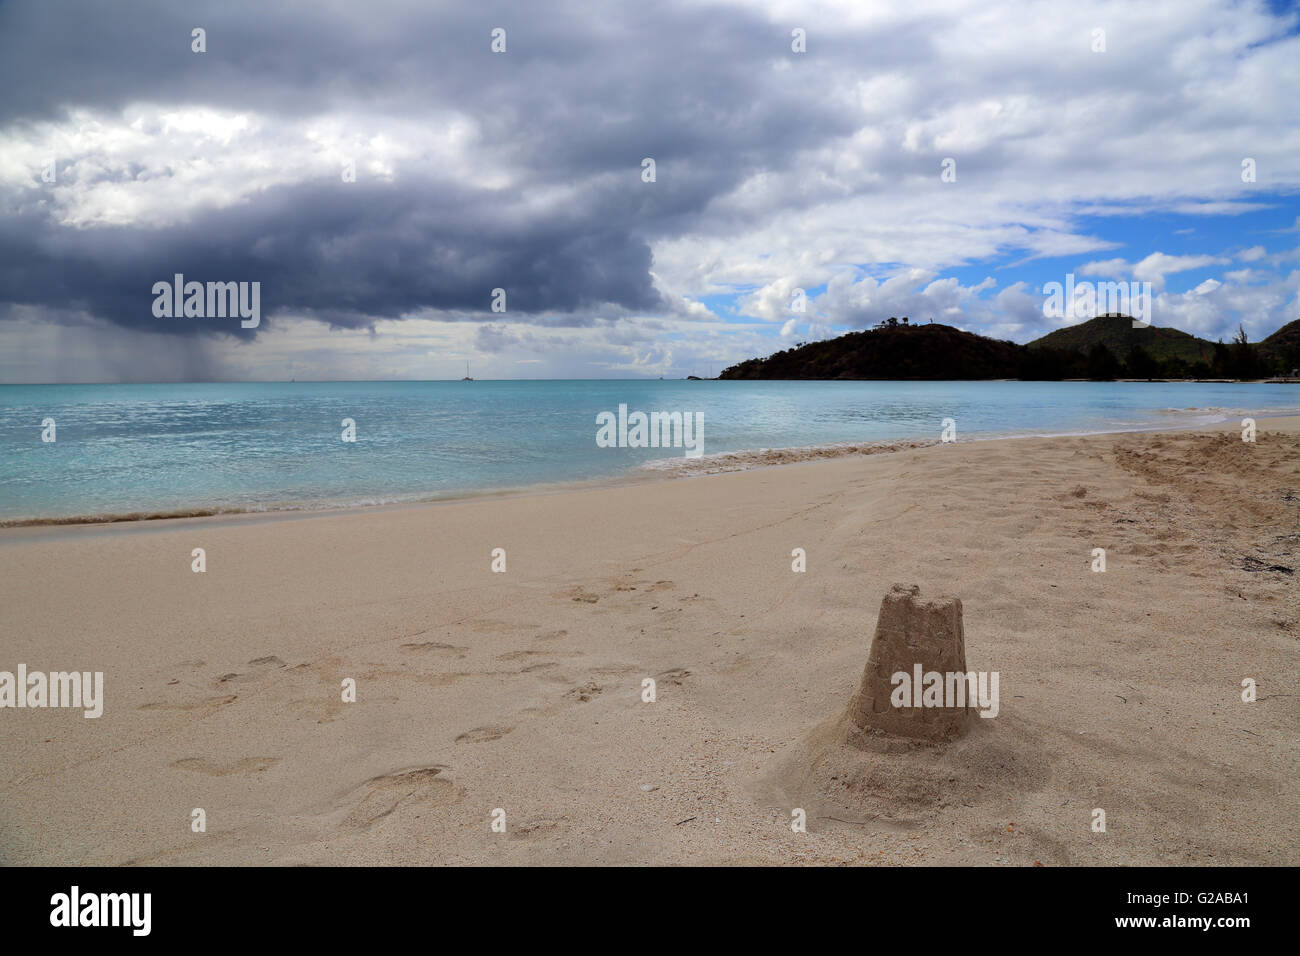 Storm clouds and rain on the horizon, Jolly Bay beach, Antigua, Caribbean - Stock Image